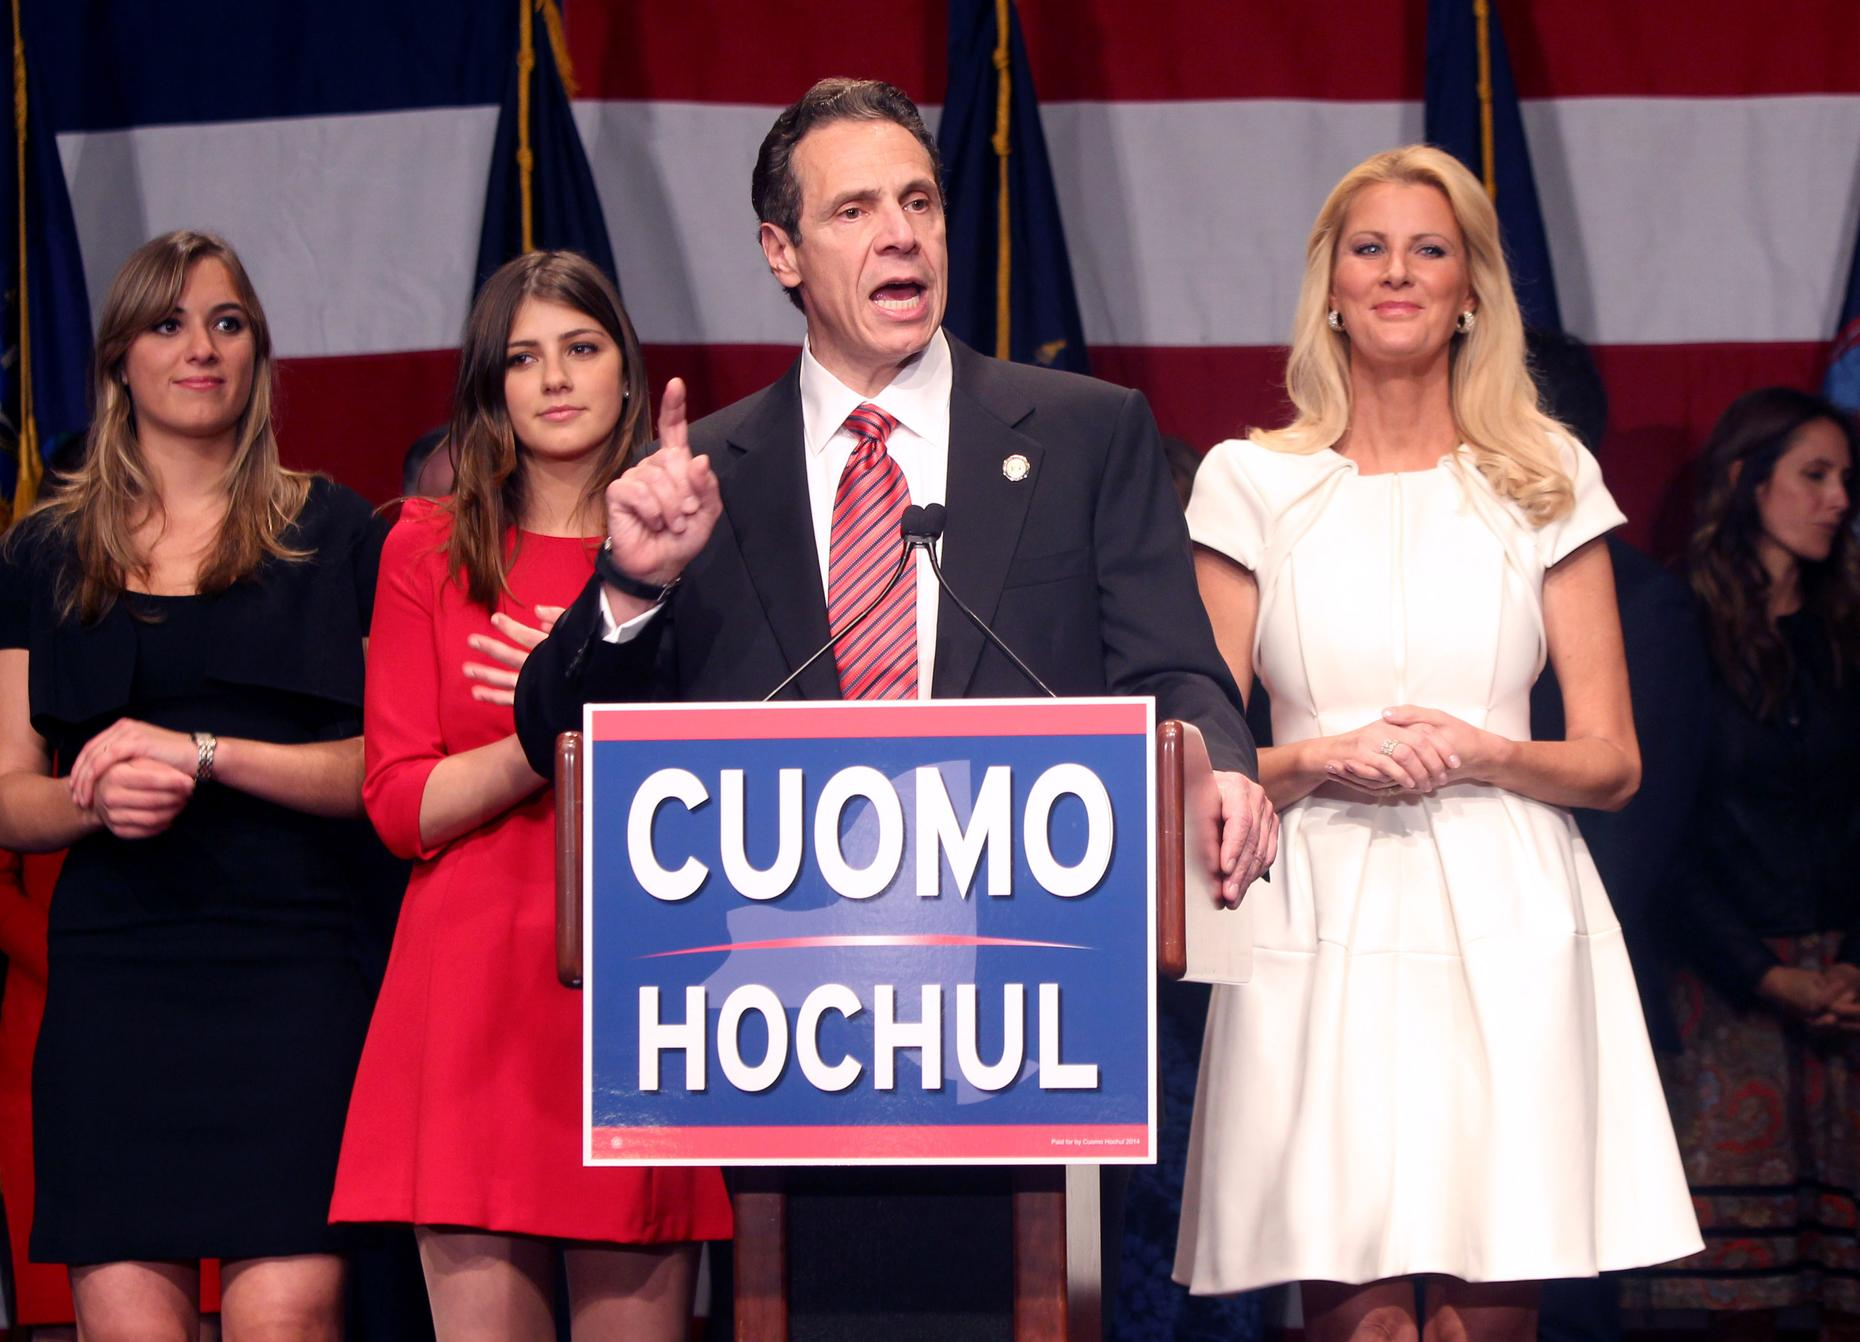 the contender andrew cuomo a biography